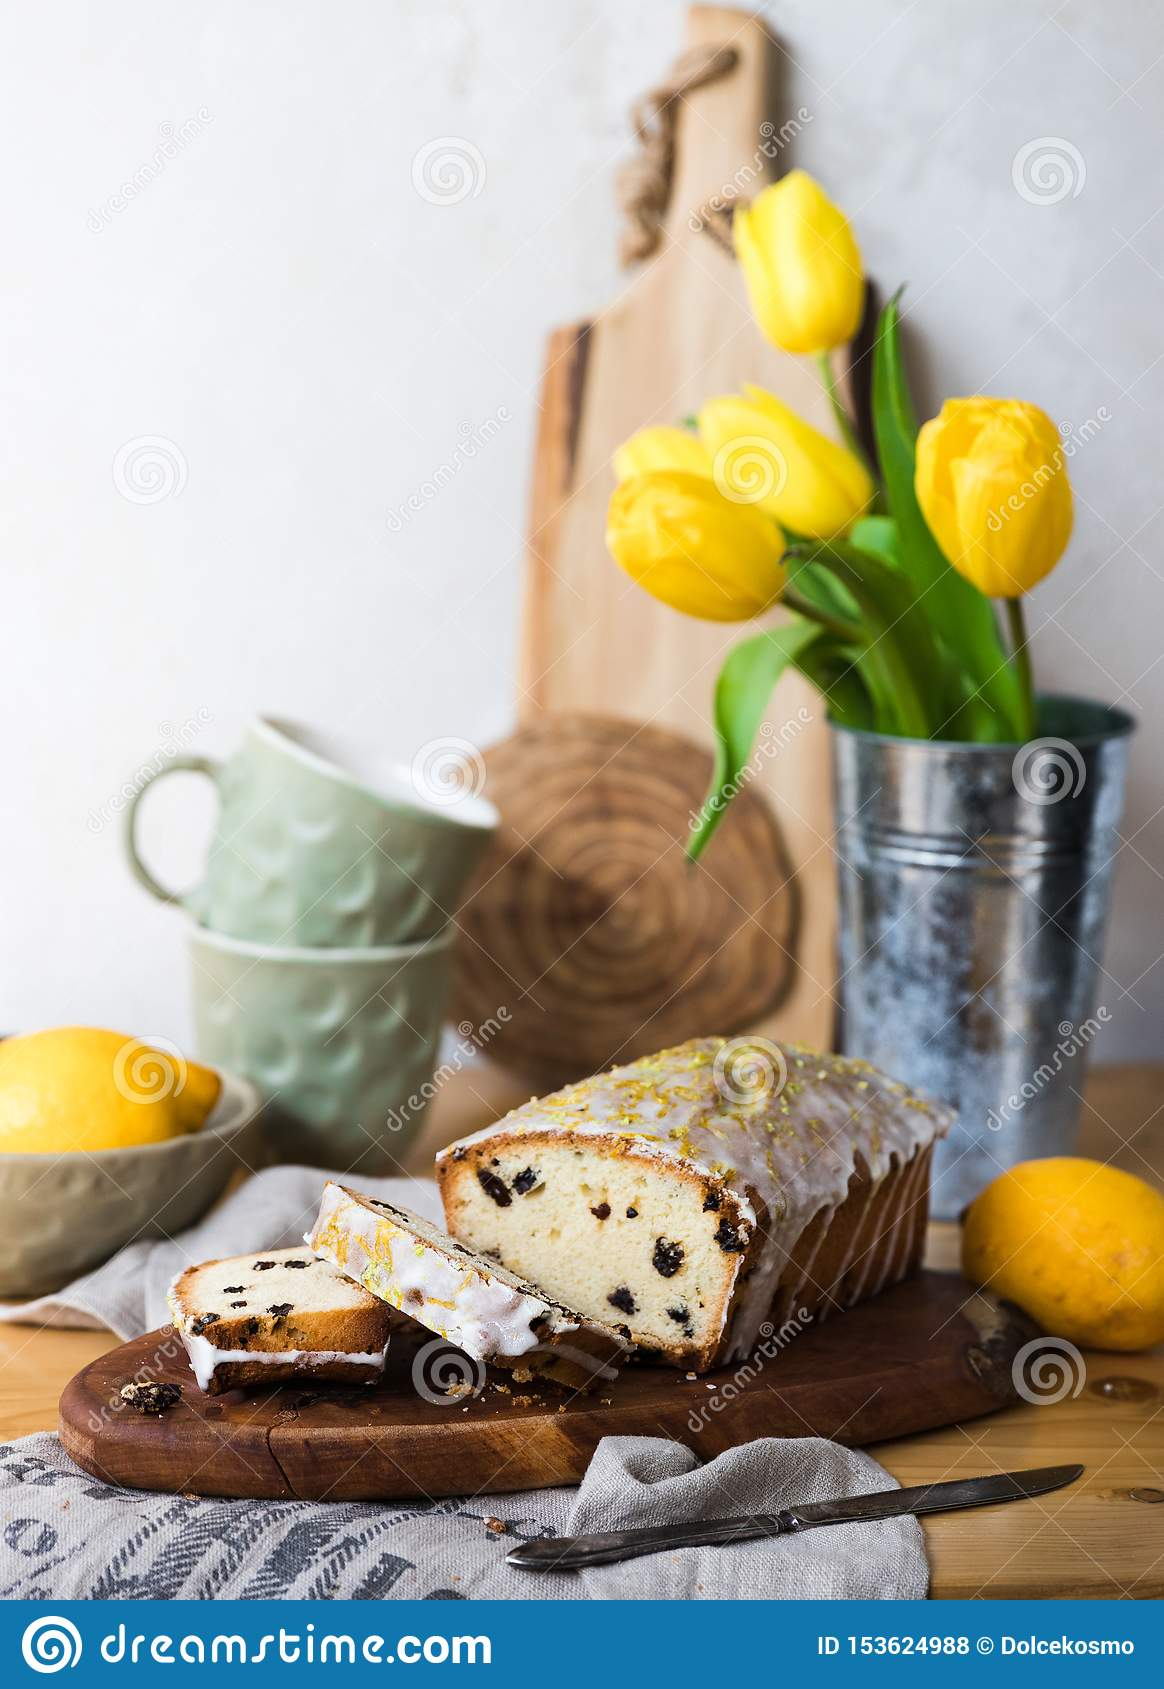 Raisin cake on a wooden board with lemon and yellow tulips